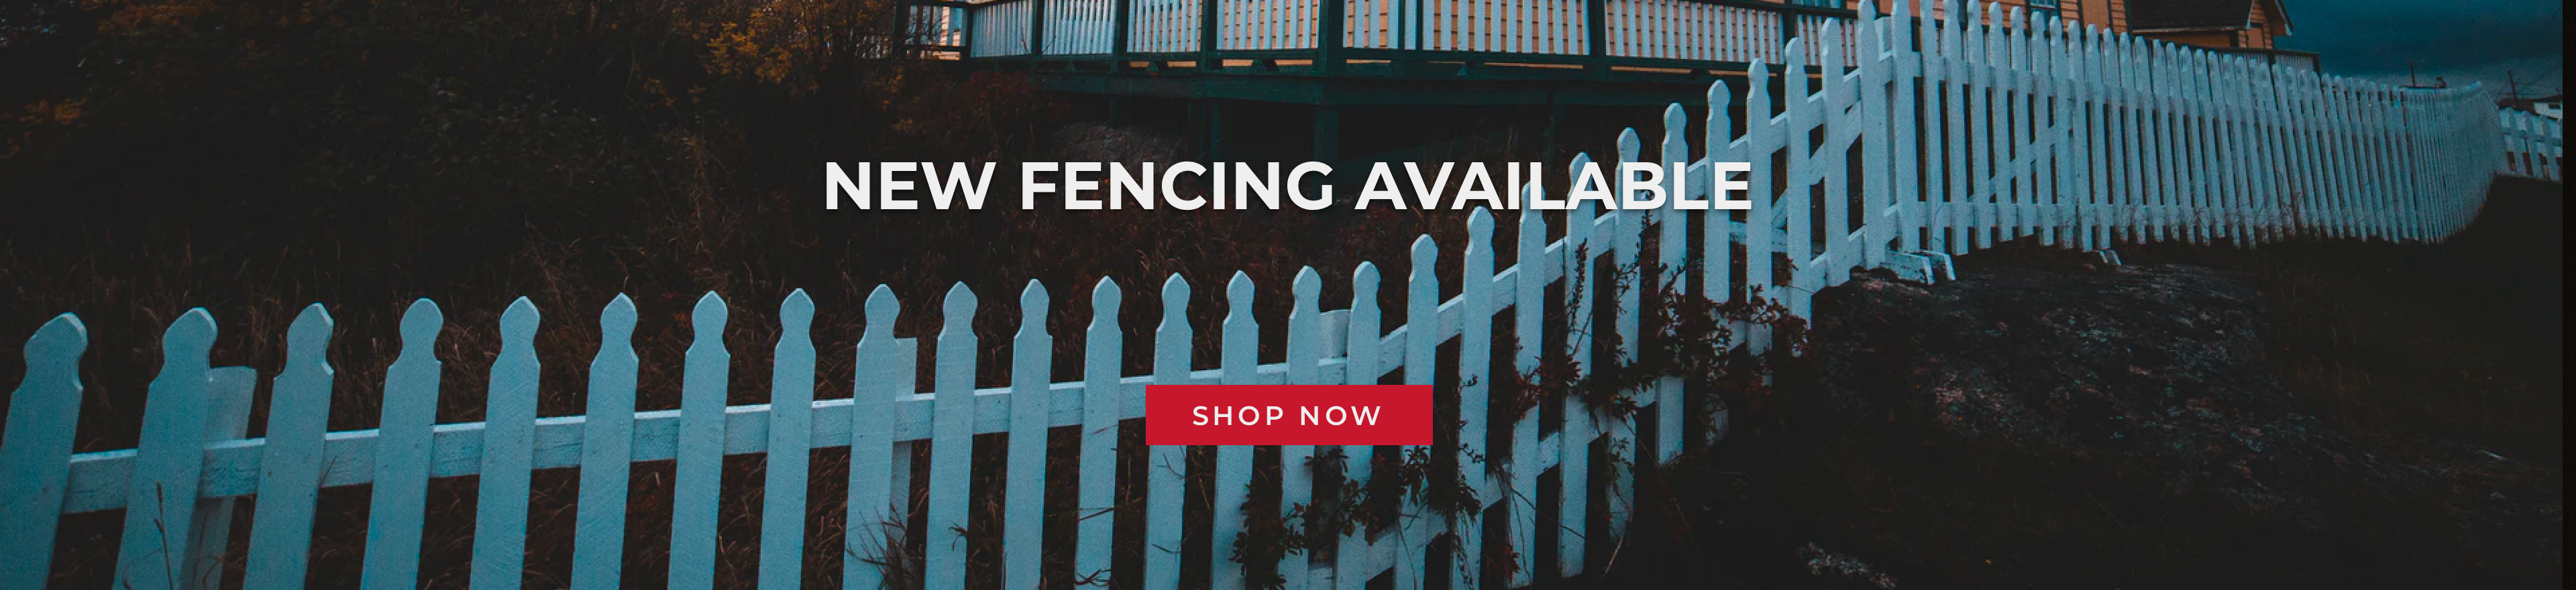 New Fencing Available